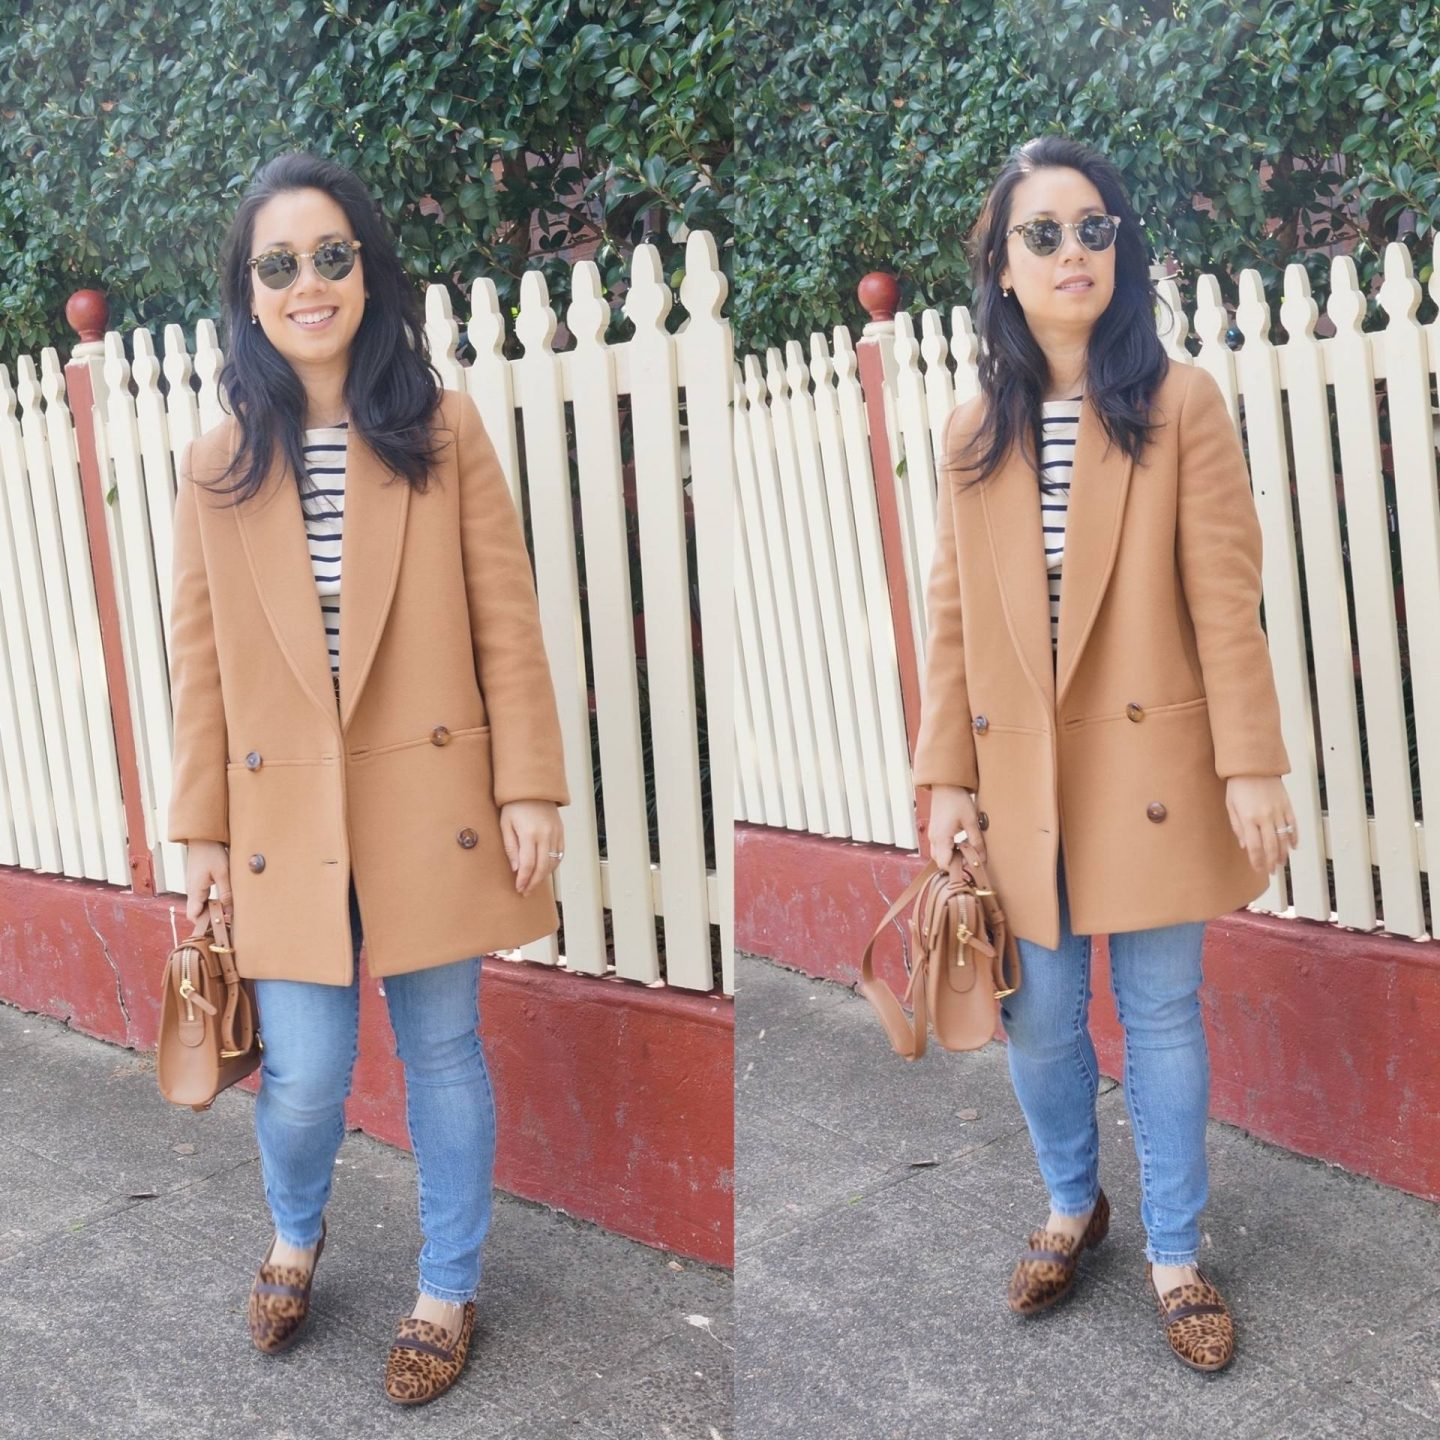 sezane james coat in blog post sharing thoughts on sezane order and knitwear